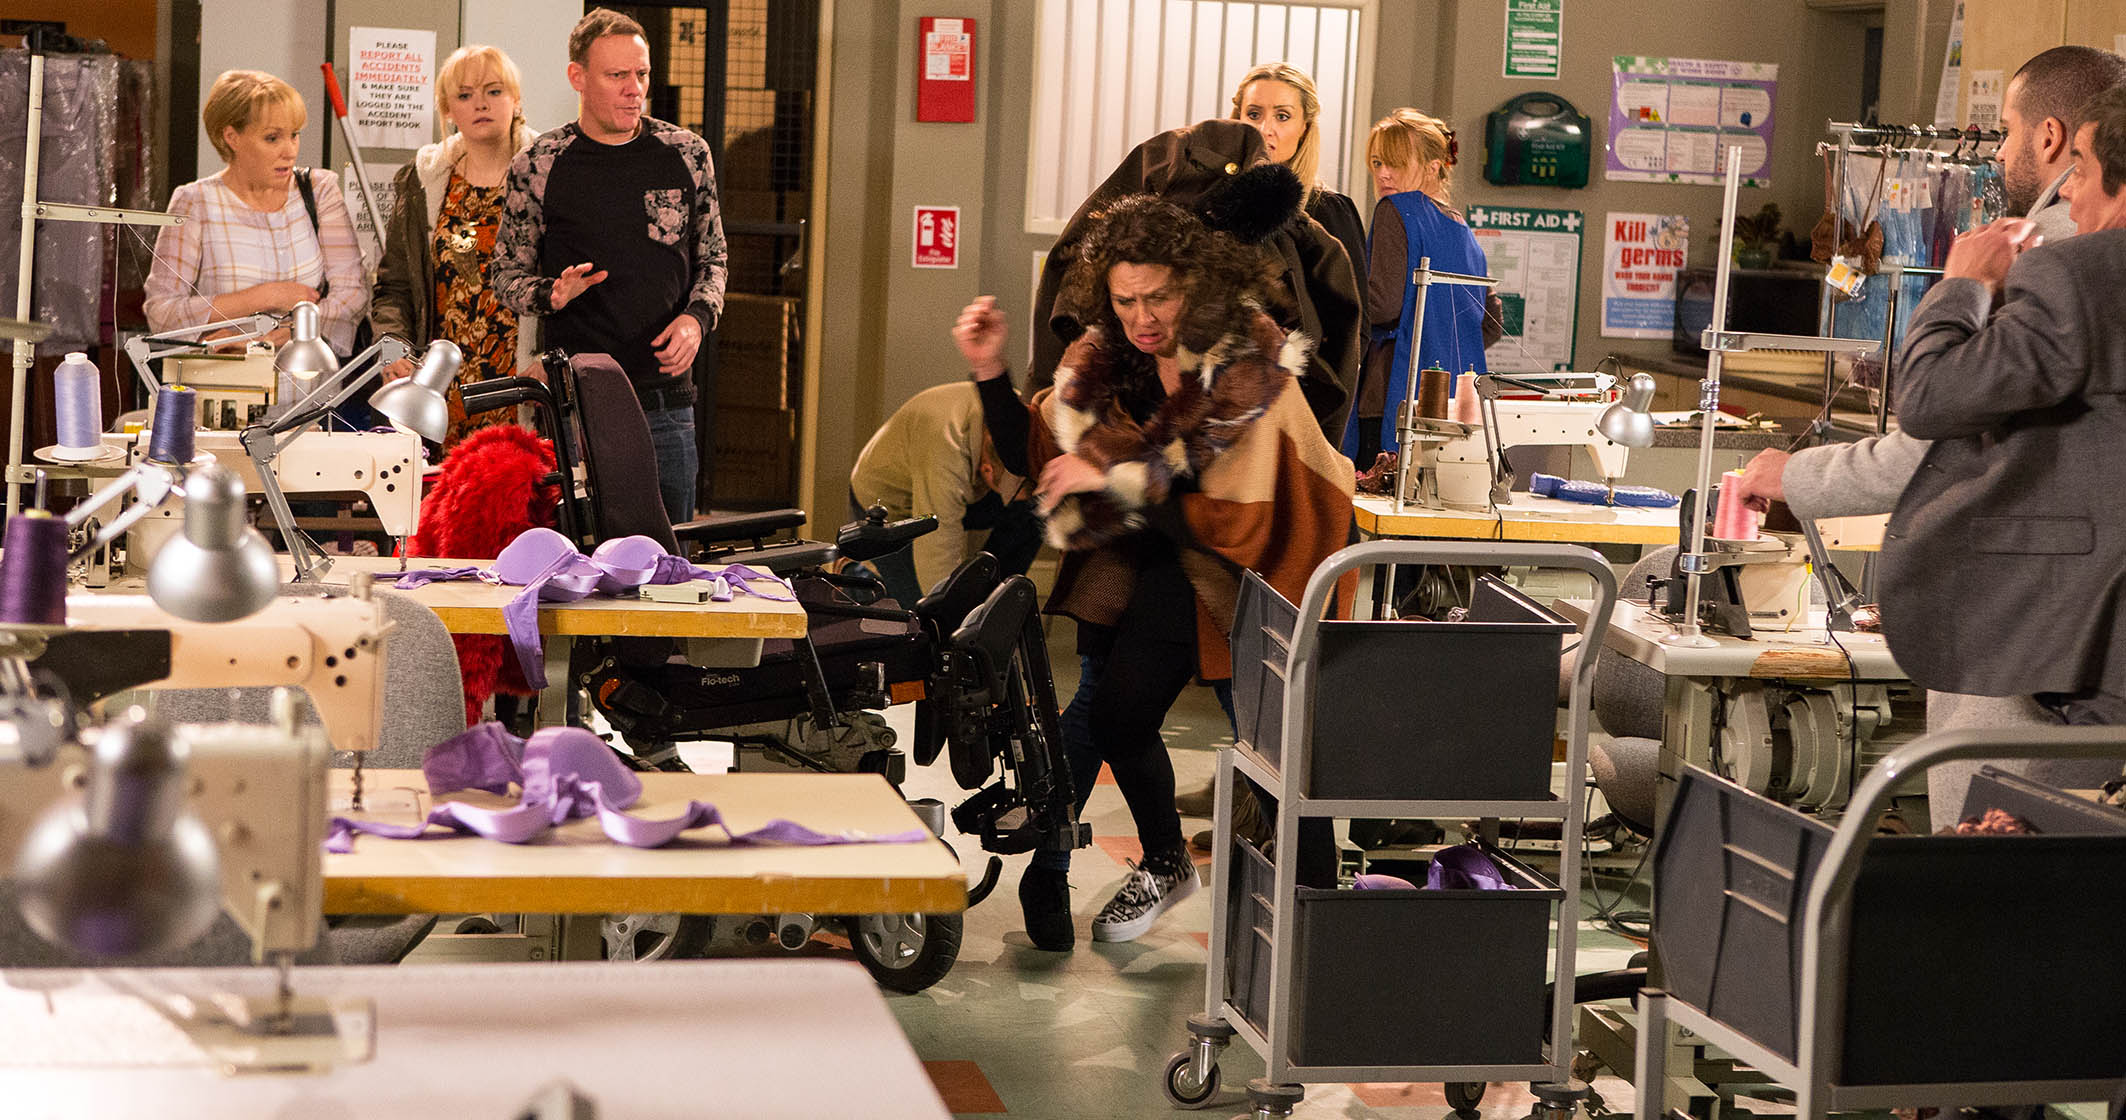 FROM ITV STRICT EMBARGO - No Use Before Tuesday 2 February 2016 Coronation Street - Ep 8834 Monday 8 February 2015 - 1st Ep Eva Price [CATHERINE TYLDESLEY] heads into work early with some food for Marta [EDYTA BUDNIK]. Marta complains that she's cold and Eva promises to try and find her a coat. In the factory Sean shows off his new coat. However Sean Tully [ANTONY COTTON] is later furious to discover his coat missing. As the factory girls argue about who could have stolen it, Marta suddenly emerges from behind some boxes wearing Sean's coat and makes a dash for it. Everyone watches open mouthed. Picture contact: david.crook@itv.com on 0161 952 6214 Photographer - Mark Bruce This photograph is (C) ITV Plc and can only be reproduced for editorial purposes directly in connection with the programme or event mentioned above, or ITV plc. Once made available by ITV plc Picture Desk, this photograph can be reproduced once only up until the transmission [TX] date and no reproduction fee will be charged. Any subsequent usage may incur a fee. This photograph must not be manipulated [excluding basic cropping] in a manner which alters the visual appearance of the person photographed deemed detrimental or inappropriate by ITV plc Picture Desk. This photograph must not be syndicated to any other company, publication or website, or permanently archived, without the express written permission of ITV Plc Picture Desk. Full Terms and conditions are available on the website www.itvpictures.com